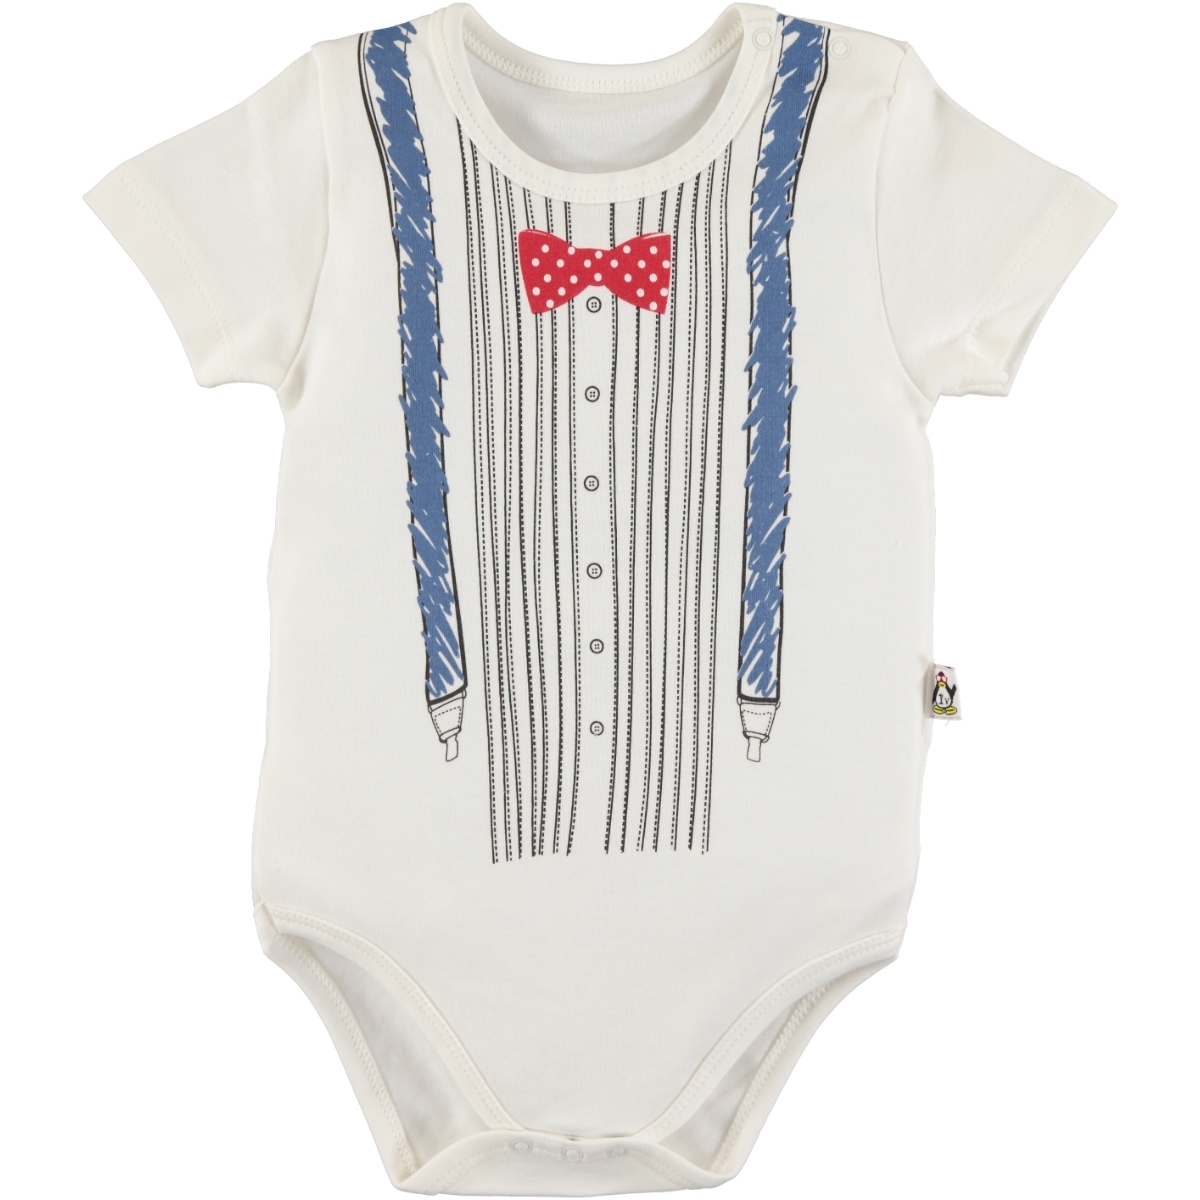 Babycool Combing 1-12 Months Bodysuit With Snaps